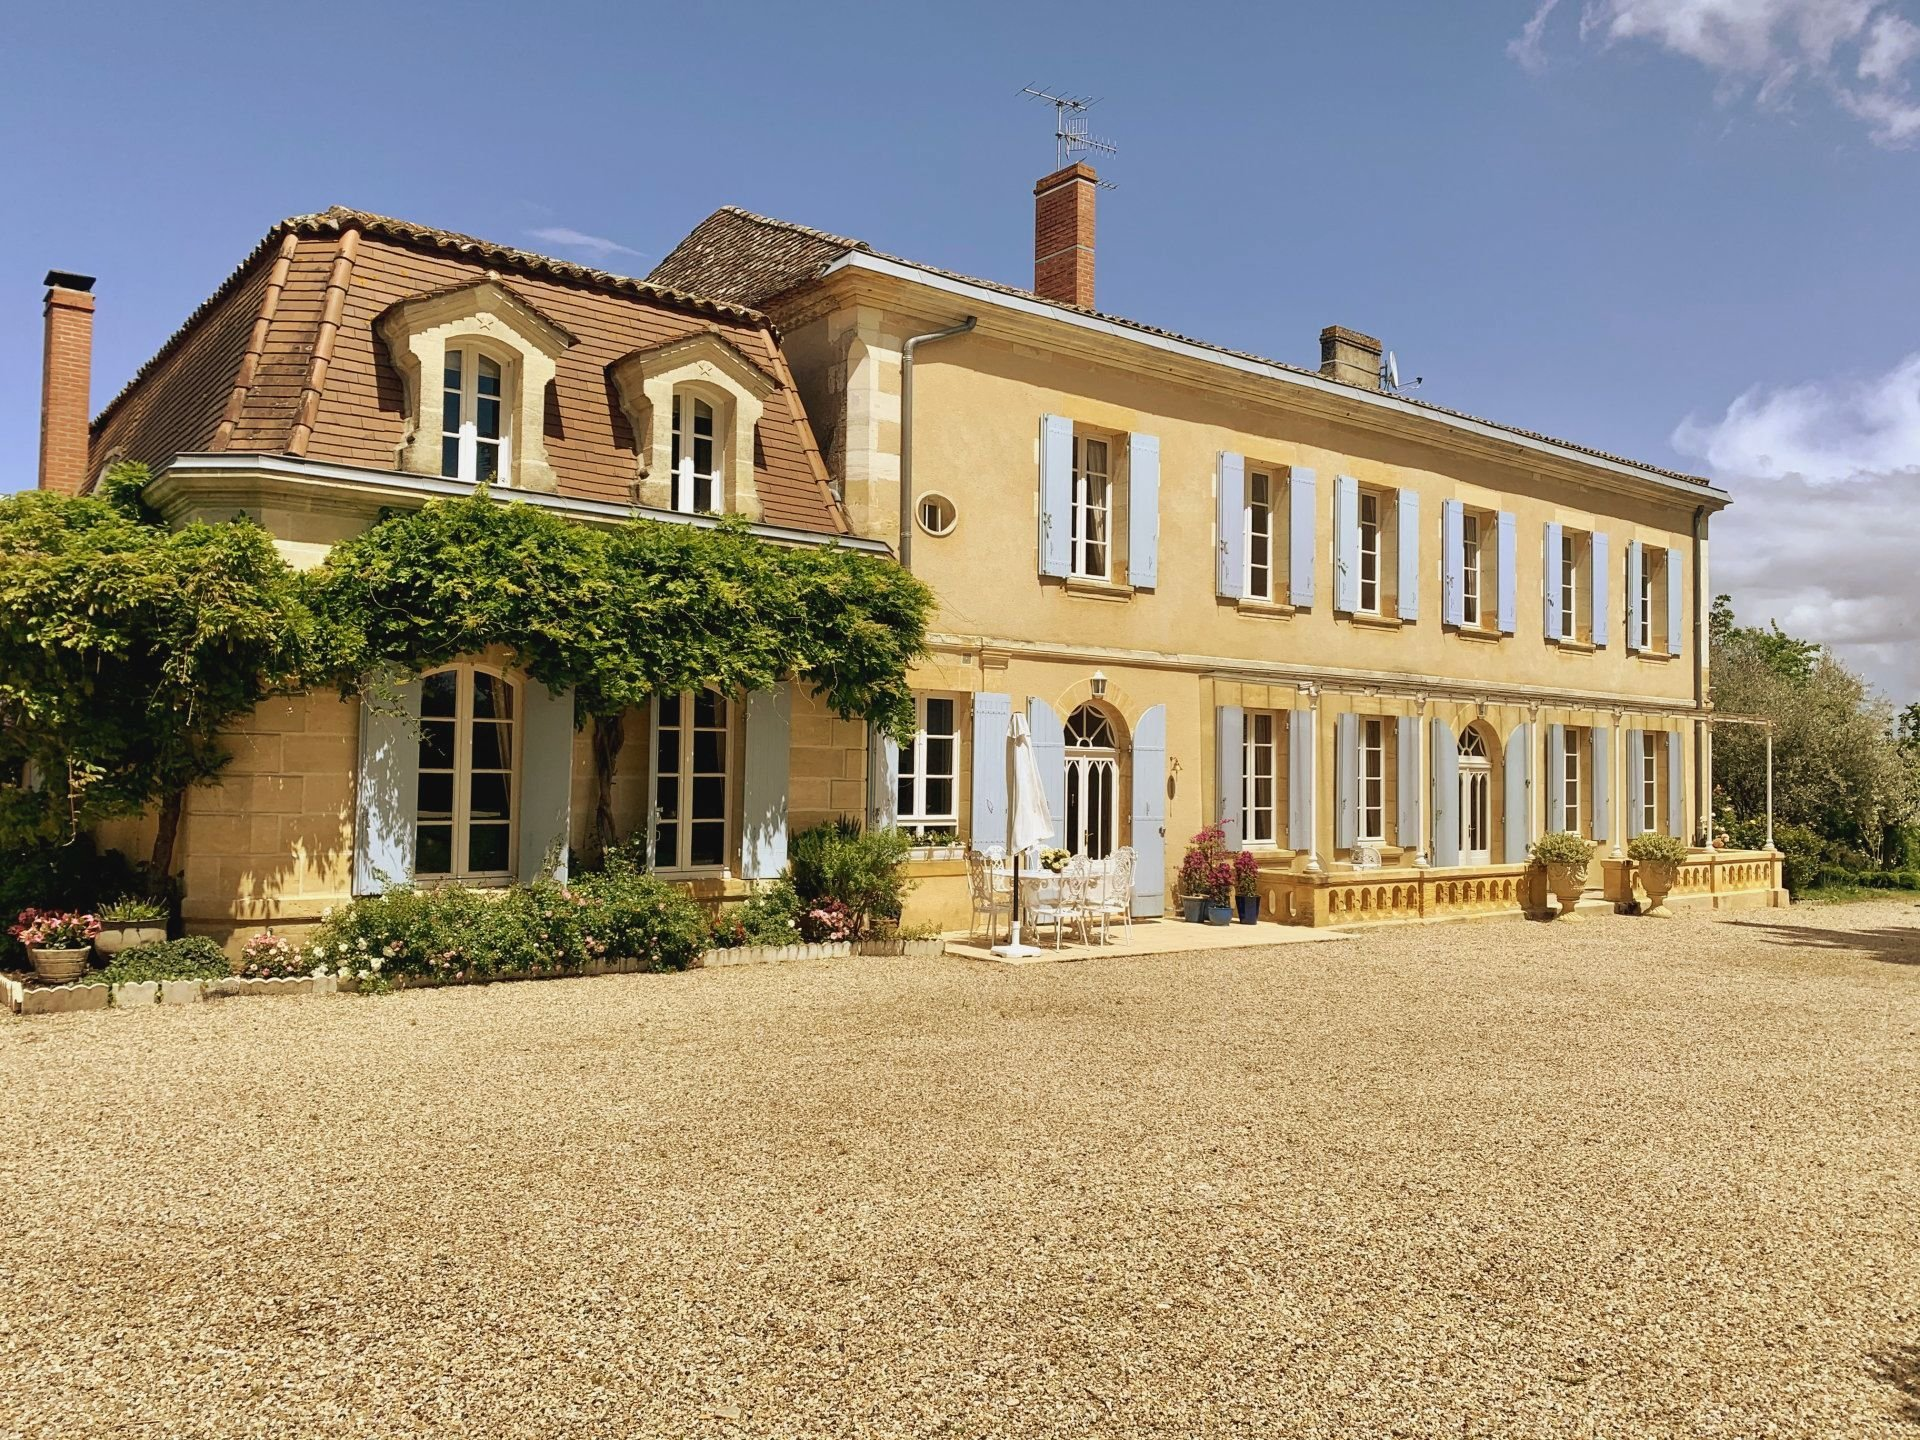 6 bedroom manor with mature parkland